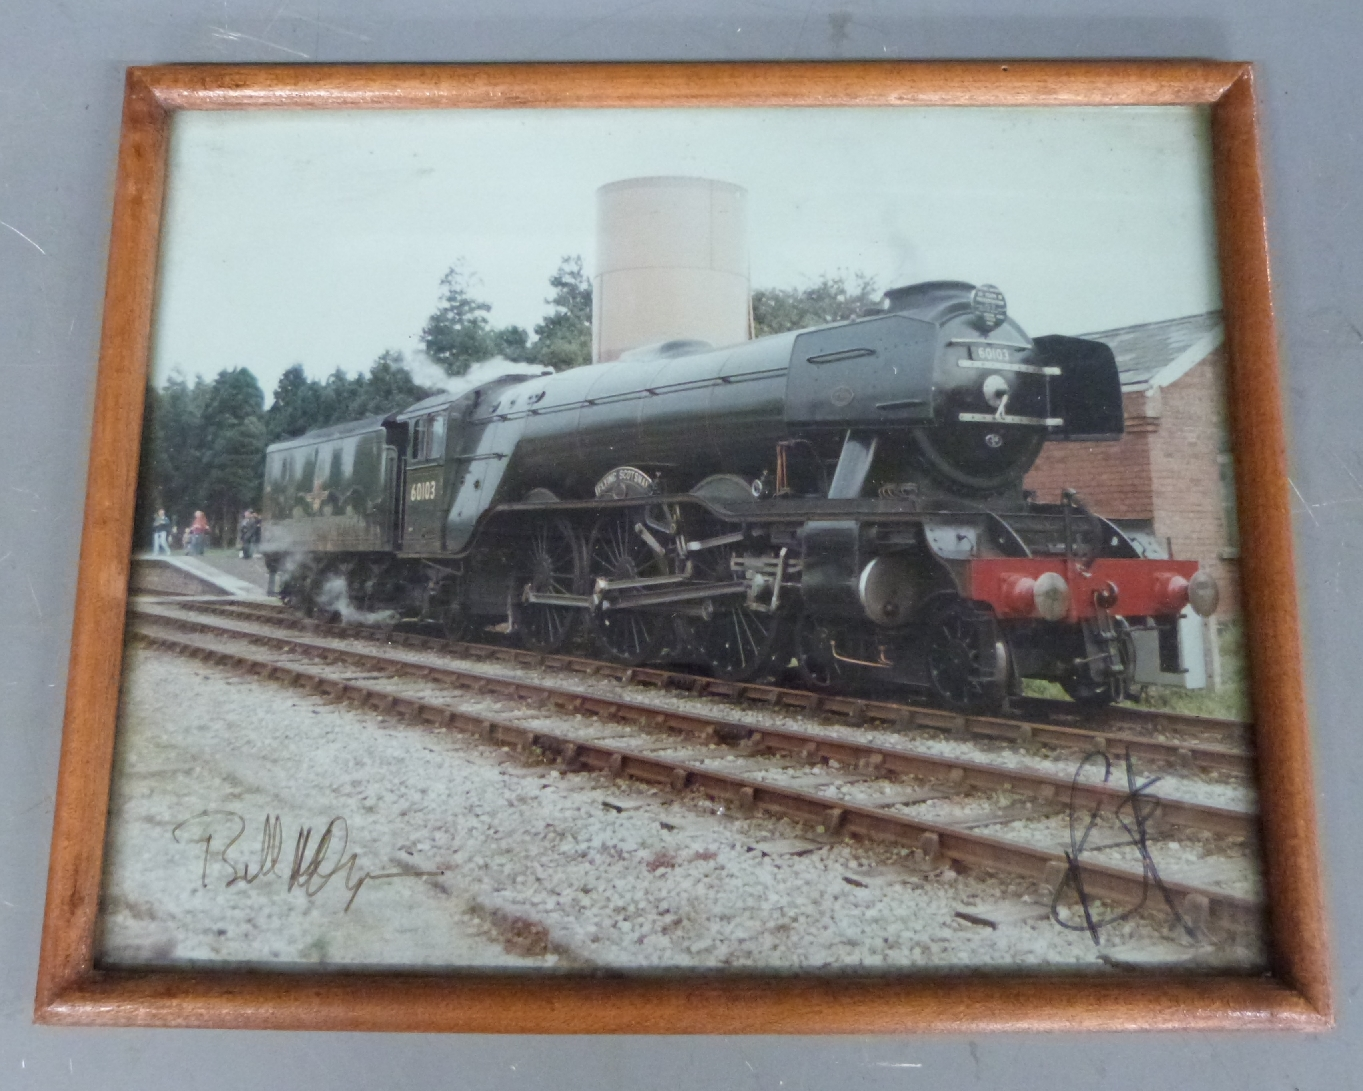 Lot 20 - Framed colour photograph of The Flying Scotsman signed by Pete Waterman and Bill McAlpine, 20 x 26m